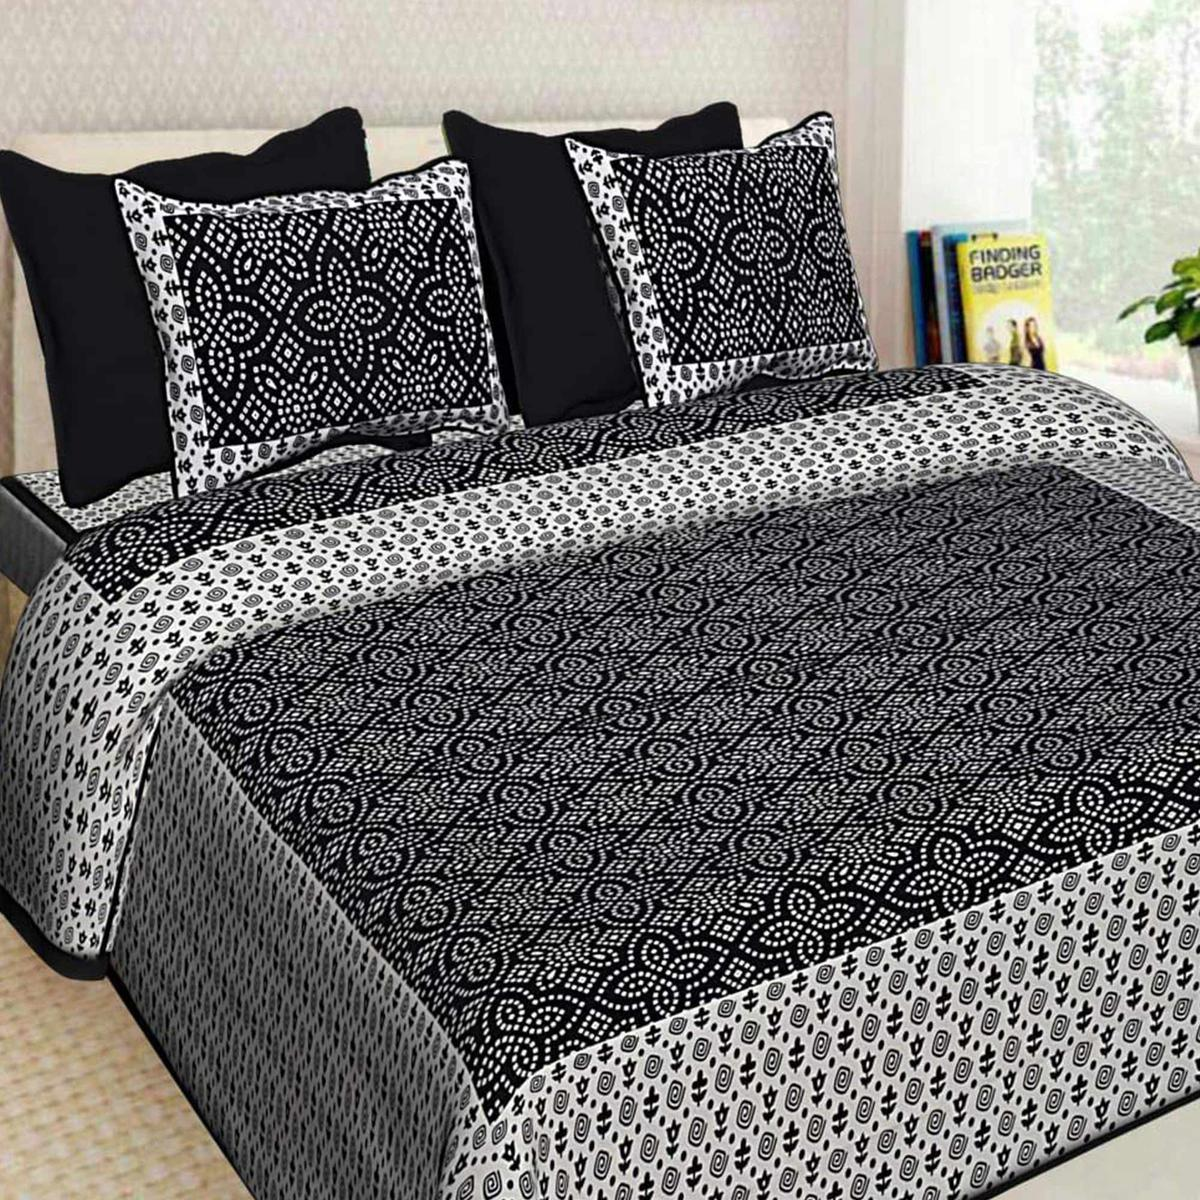 Black Colored Bandhej Pattern White Base  Screen Print Cotton Queen Sized Bed Sheet With 2 Pillow Cover